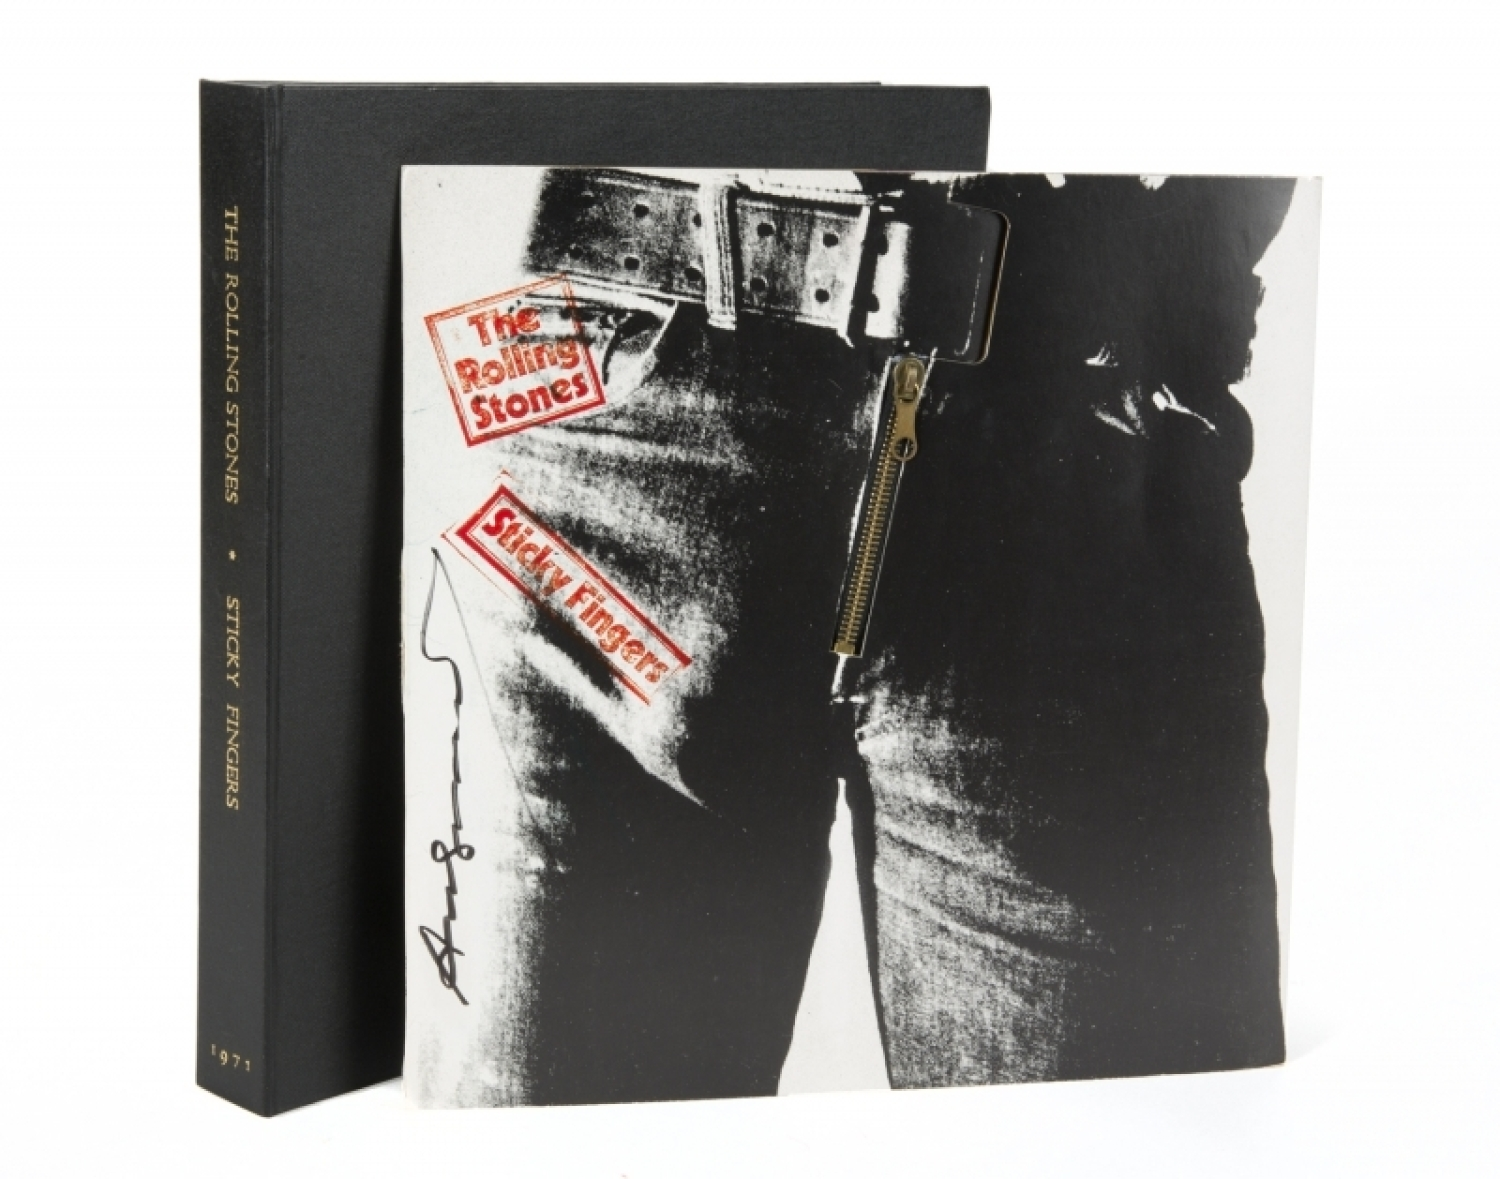 ANDY WARHOL SIGNED ROLLING STONES STICKY FINGERS ALBUM